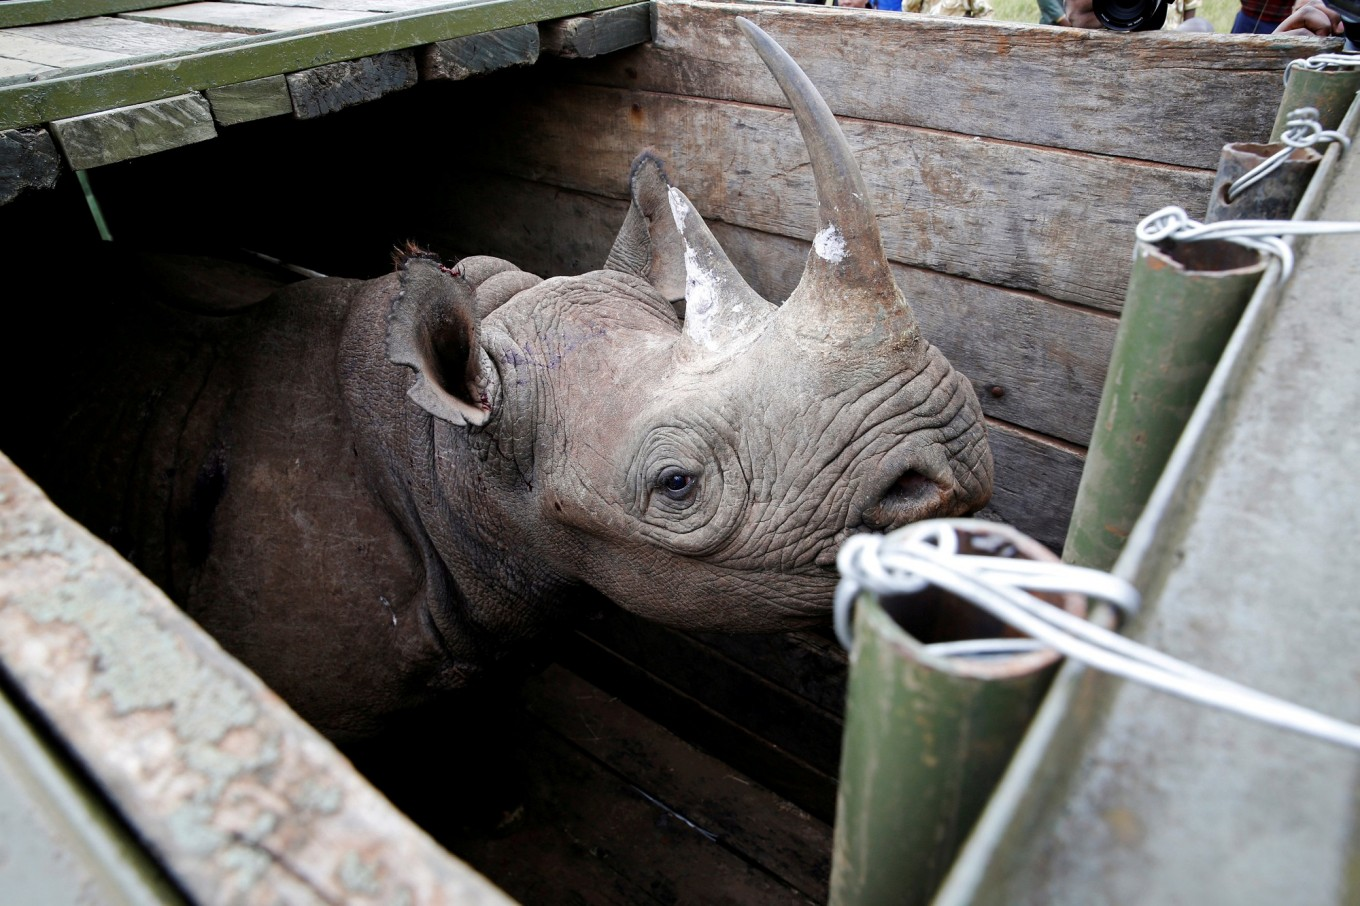 'Saving species with feces': Rhino poo aids conservation study